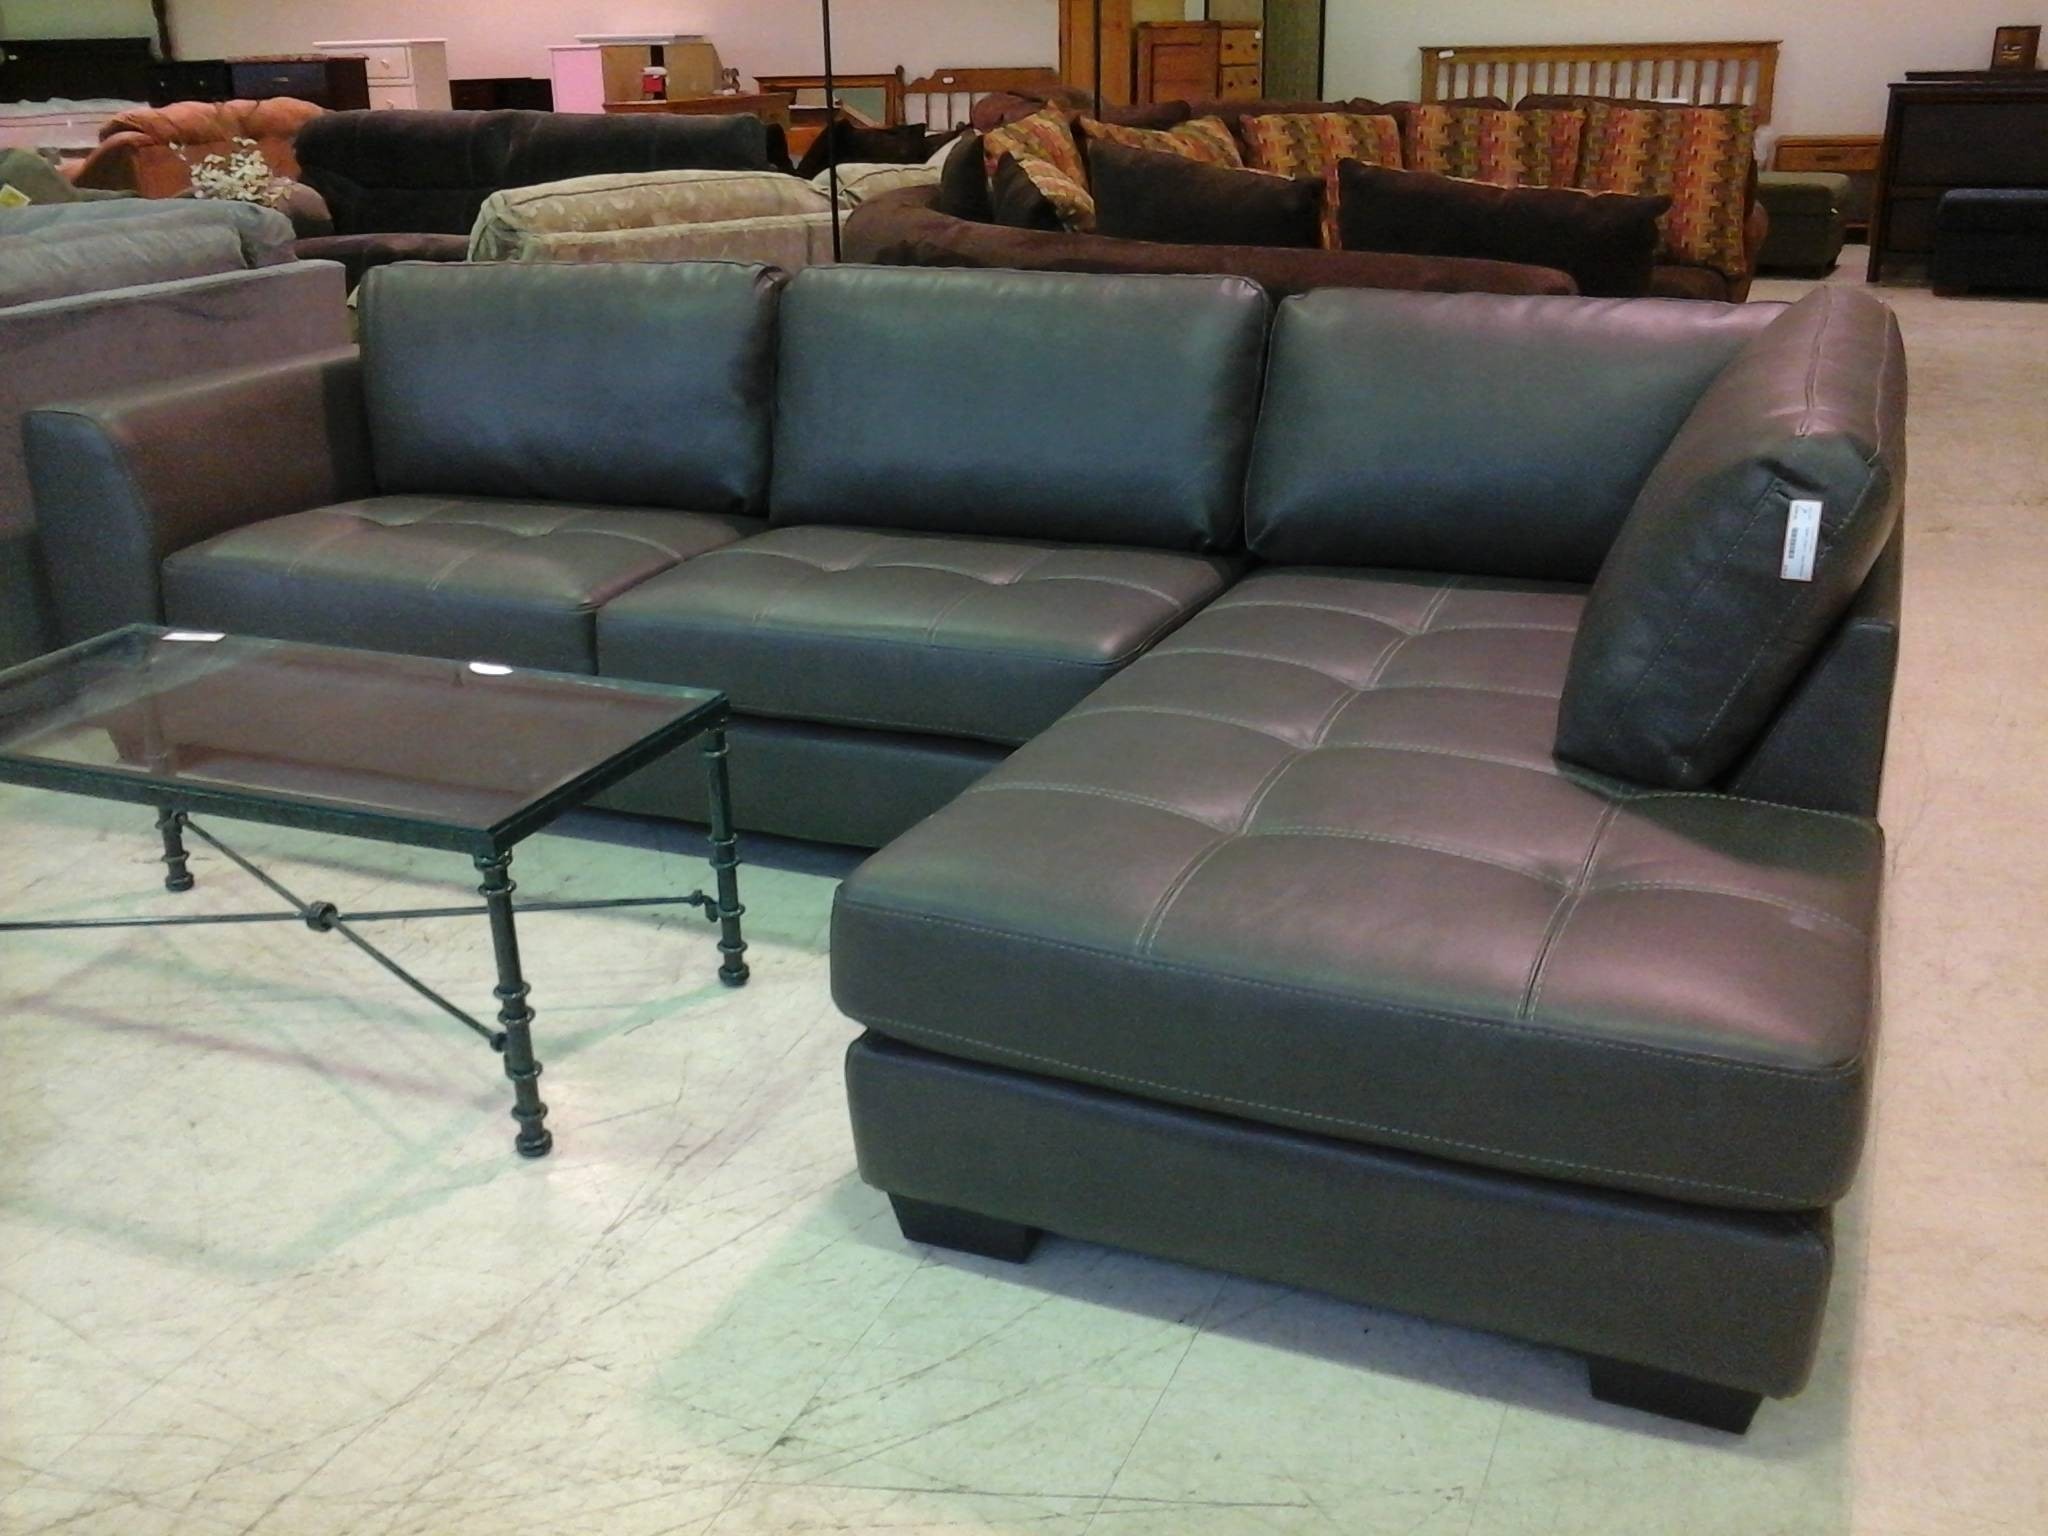 New Real Leather Sectional Sofas 66 For Your Seagrass Sectional Within Seagrass Sectional Sofas (View 9 of 15)